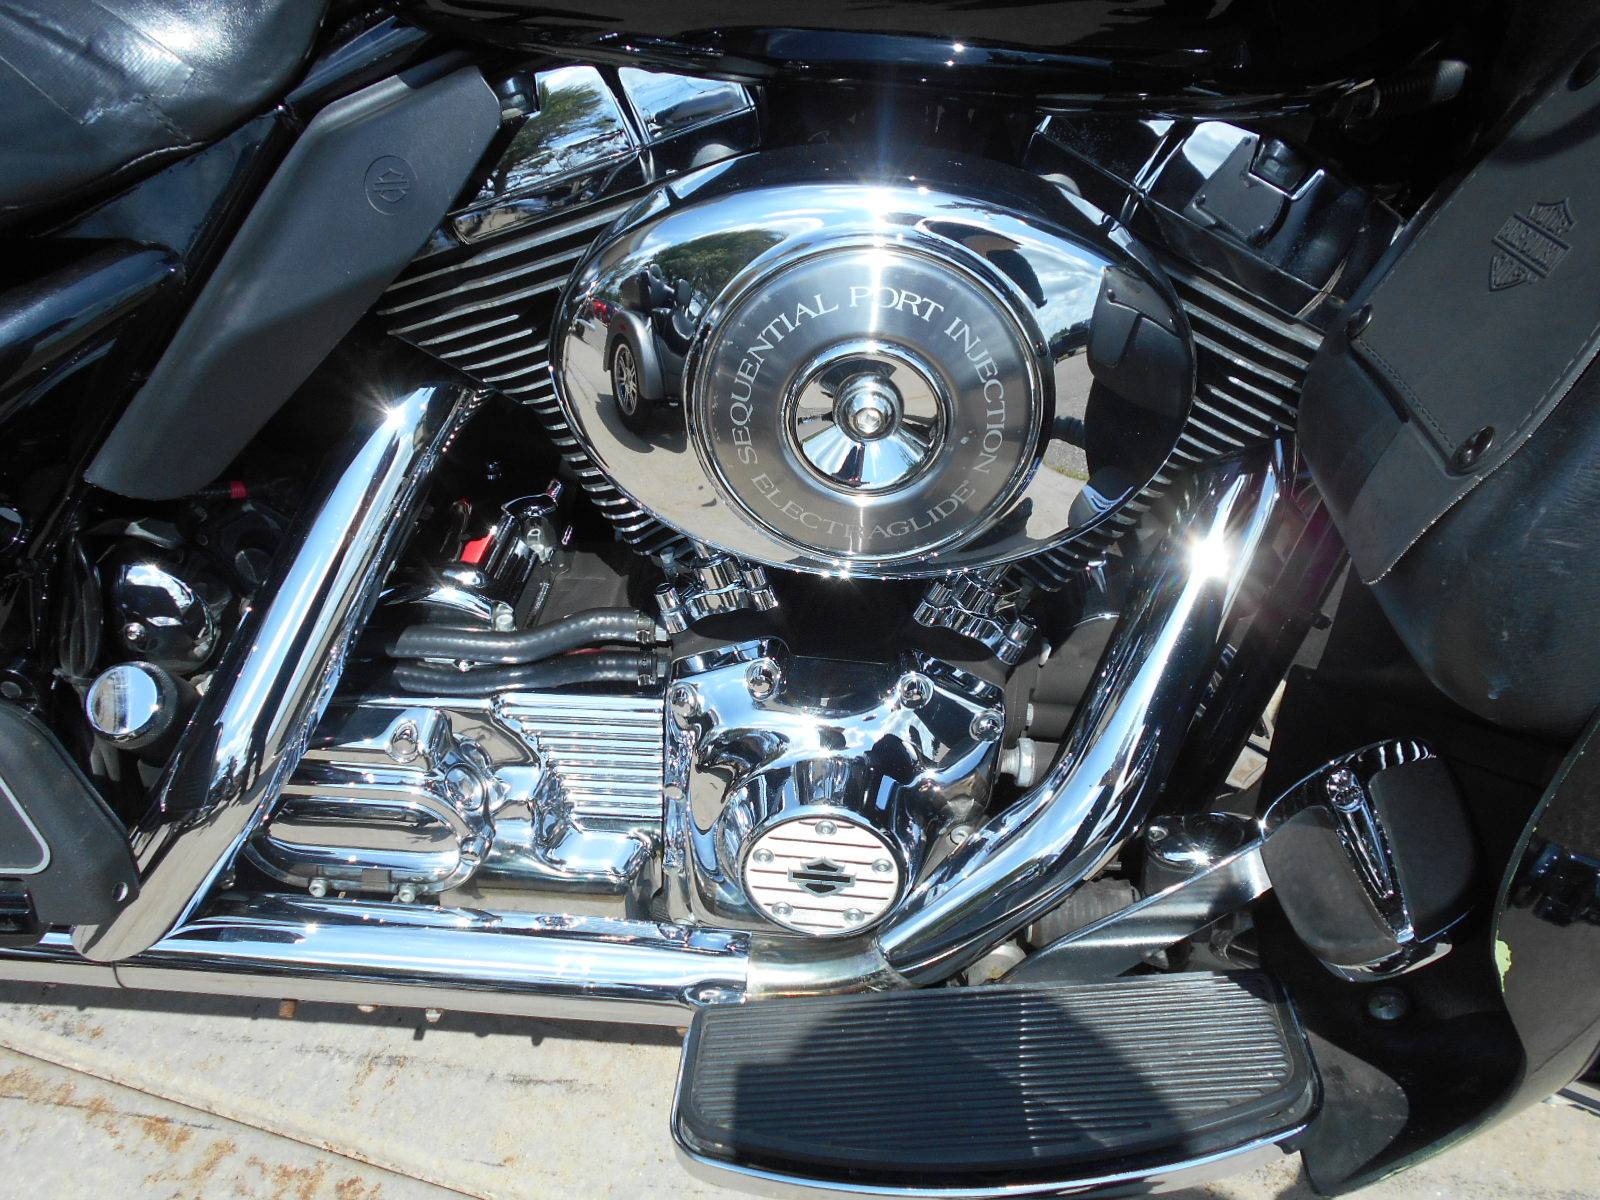 2005 Harley-Davidson FLHTC/FLHTCI Electra Glide® Classic in Mauston, Wisconsin - Photo 5